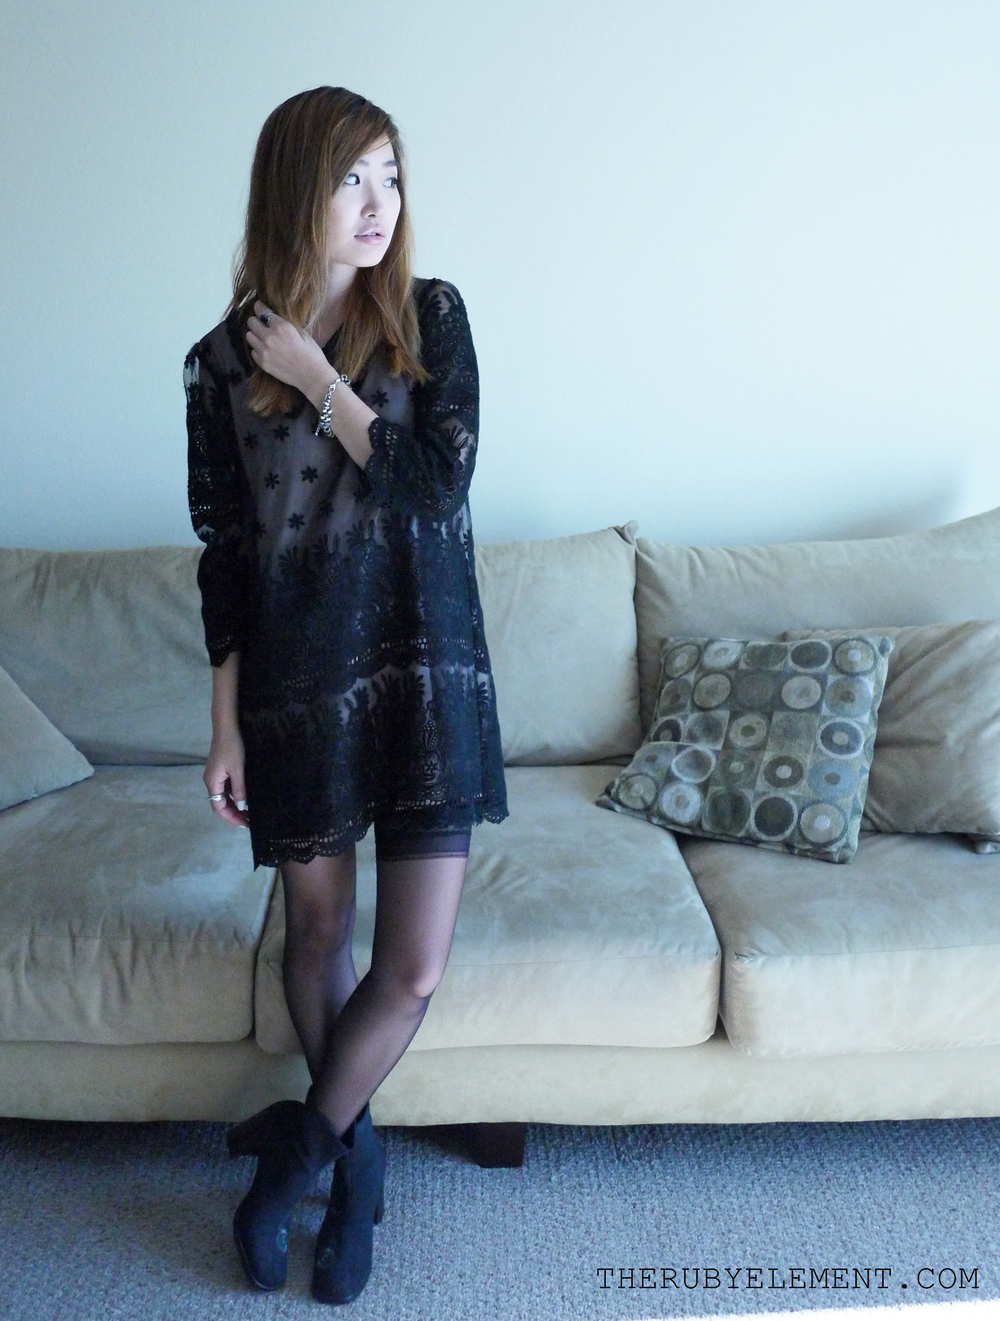 [the elements: black liner ( Stylenanda ), lace shift dress with a collar (Korea), sheer stockings (Nordstrom), boots (vintage, thanks mama!)]